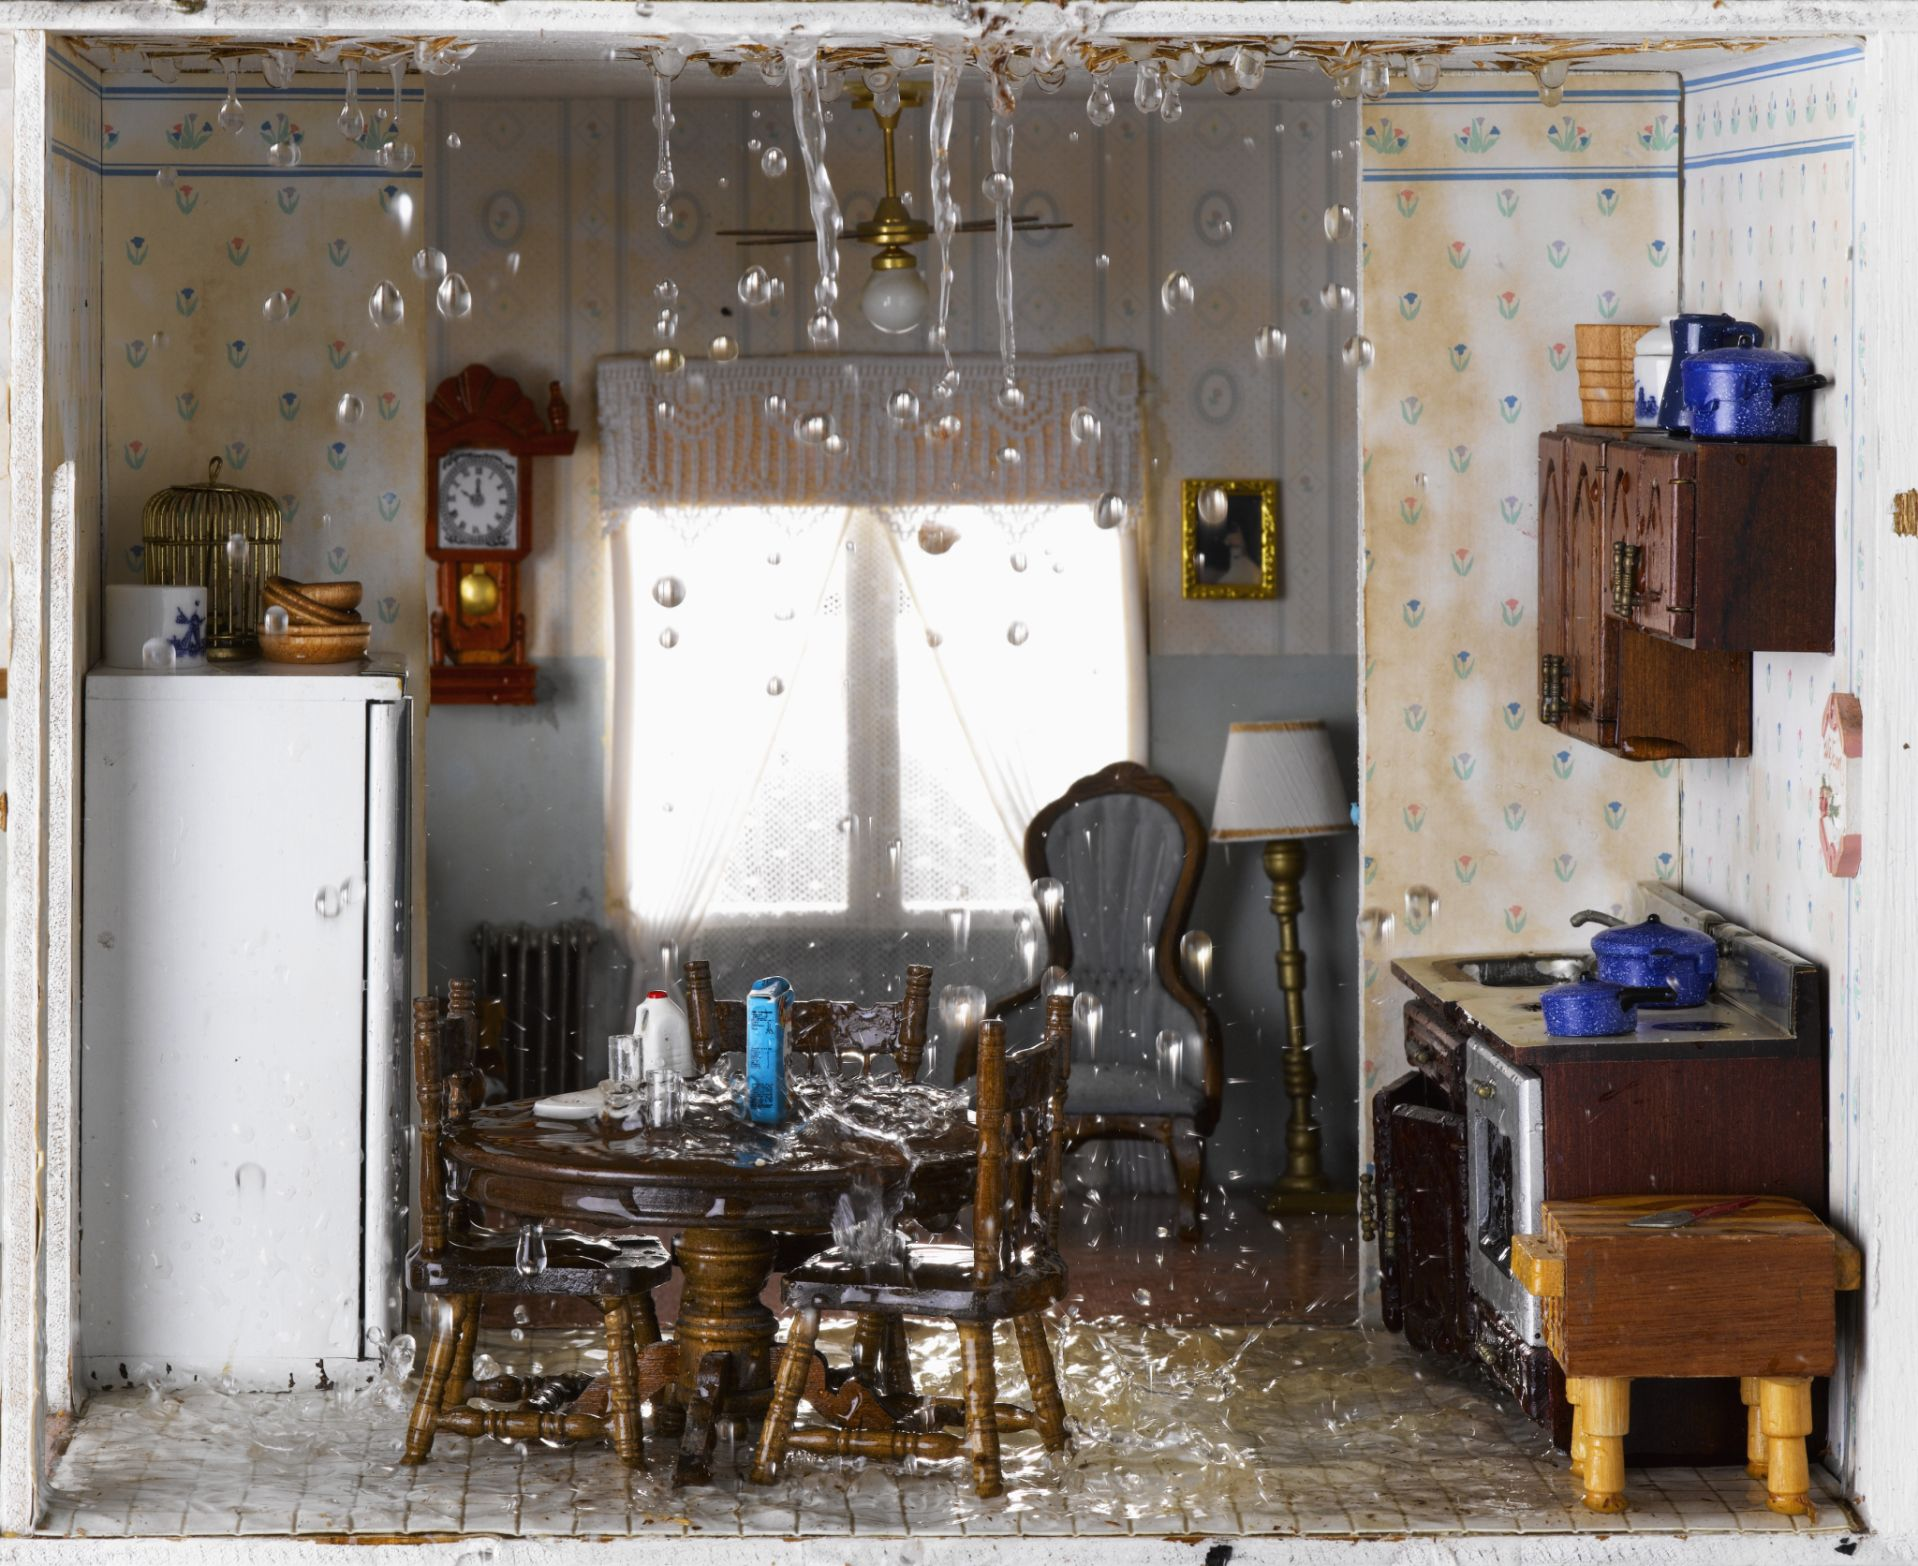 water leaking from ceiling